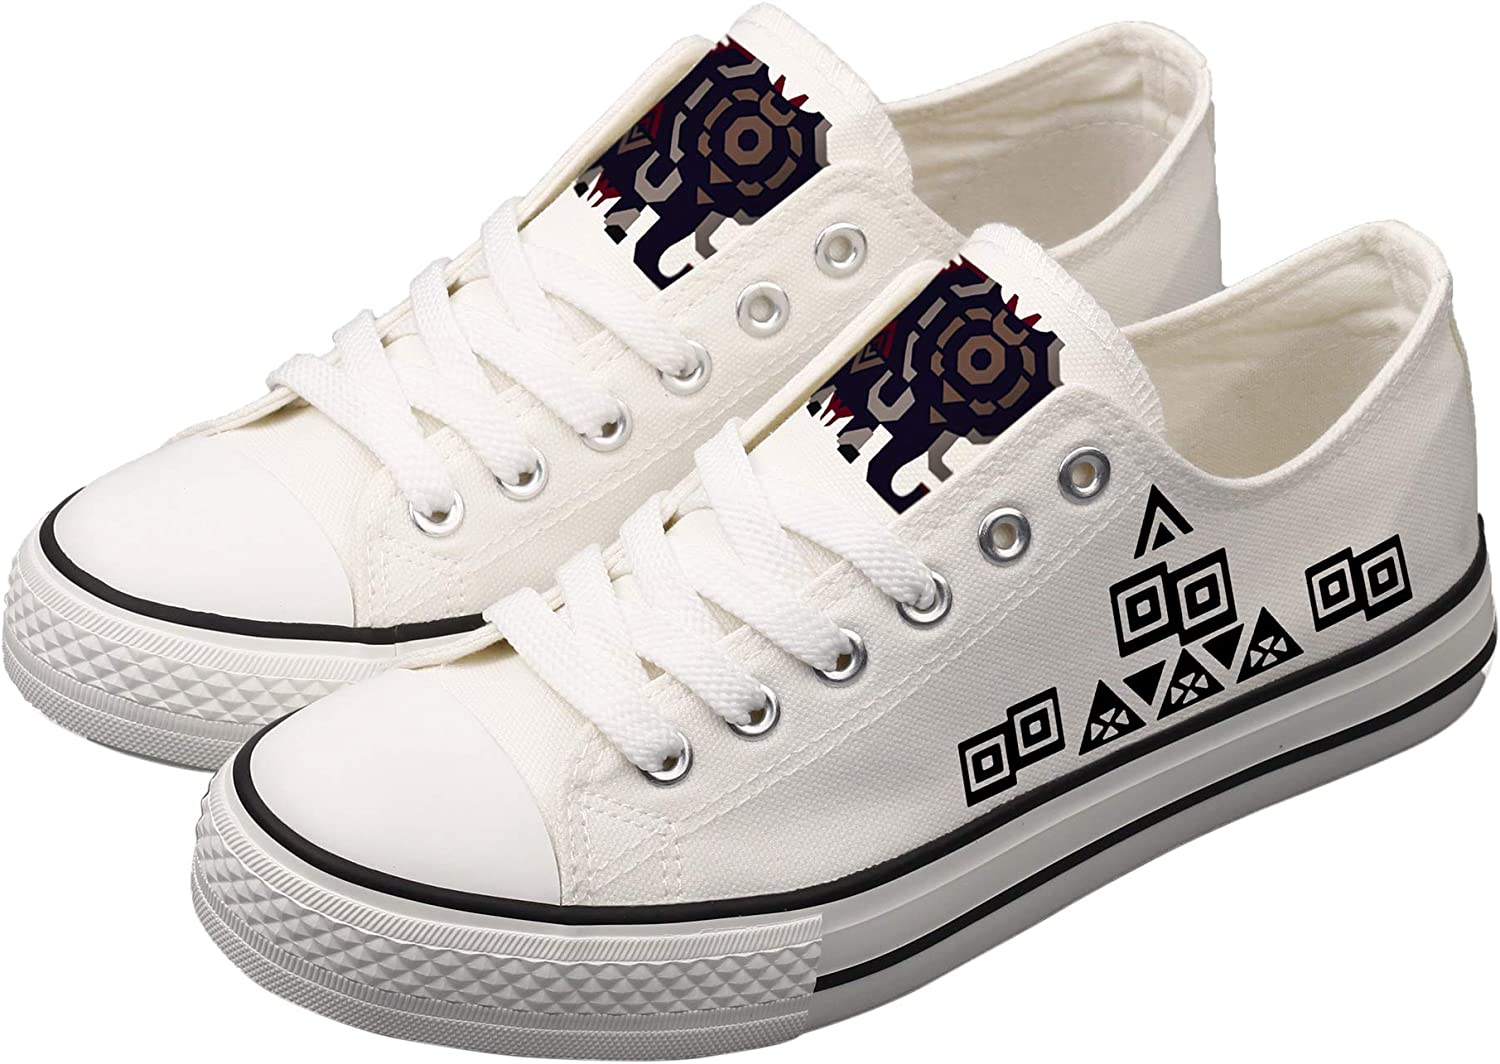 Antetok Monster Hunter Hand-Painted Canvas shoes Unisex Designs Casual Canvas shoes Cosplay Low Cut Sneakers